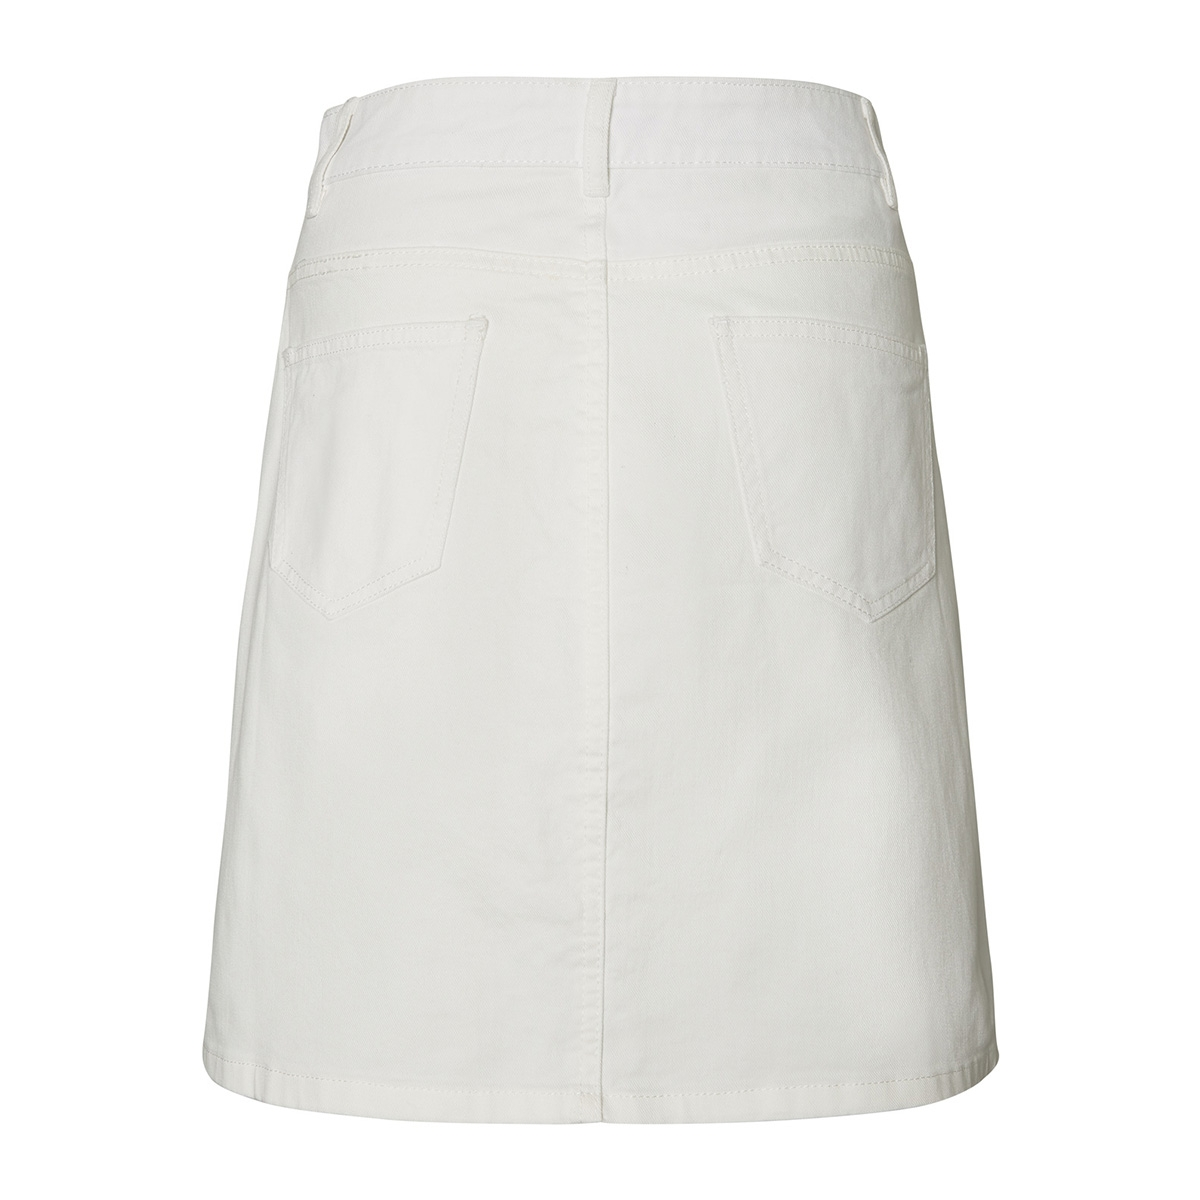 nmsunny shortdnm skaterskirt gu125 noos 27001341 noisy may rok bright white